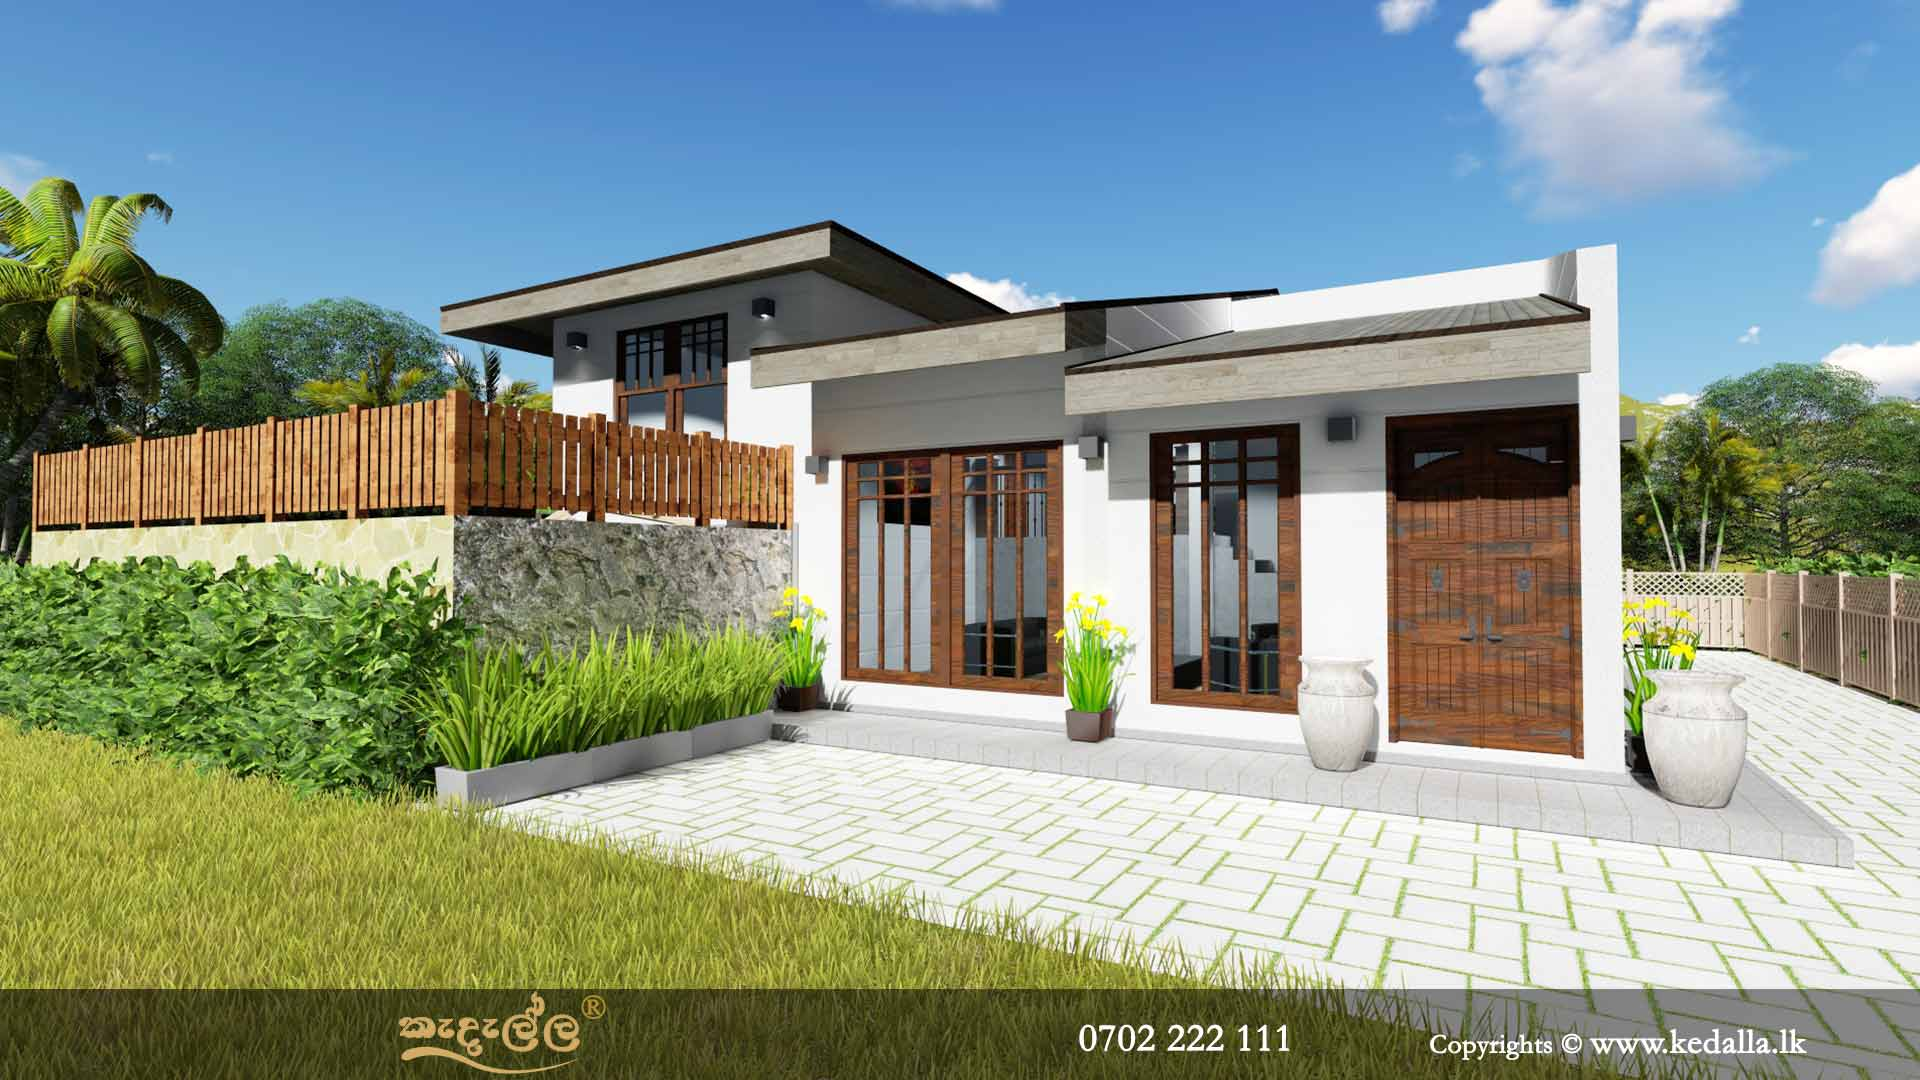 Remarkable 3D Small House Plans Latest Home Designs In Sri Lanka Kedalla Lk Interior Design Ideas Oteneahmetsinanyavuzinfo